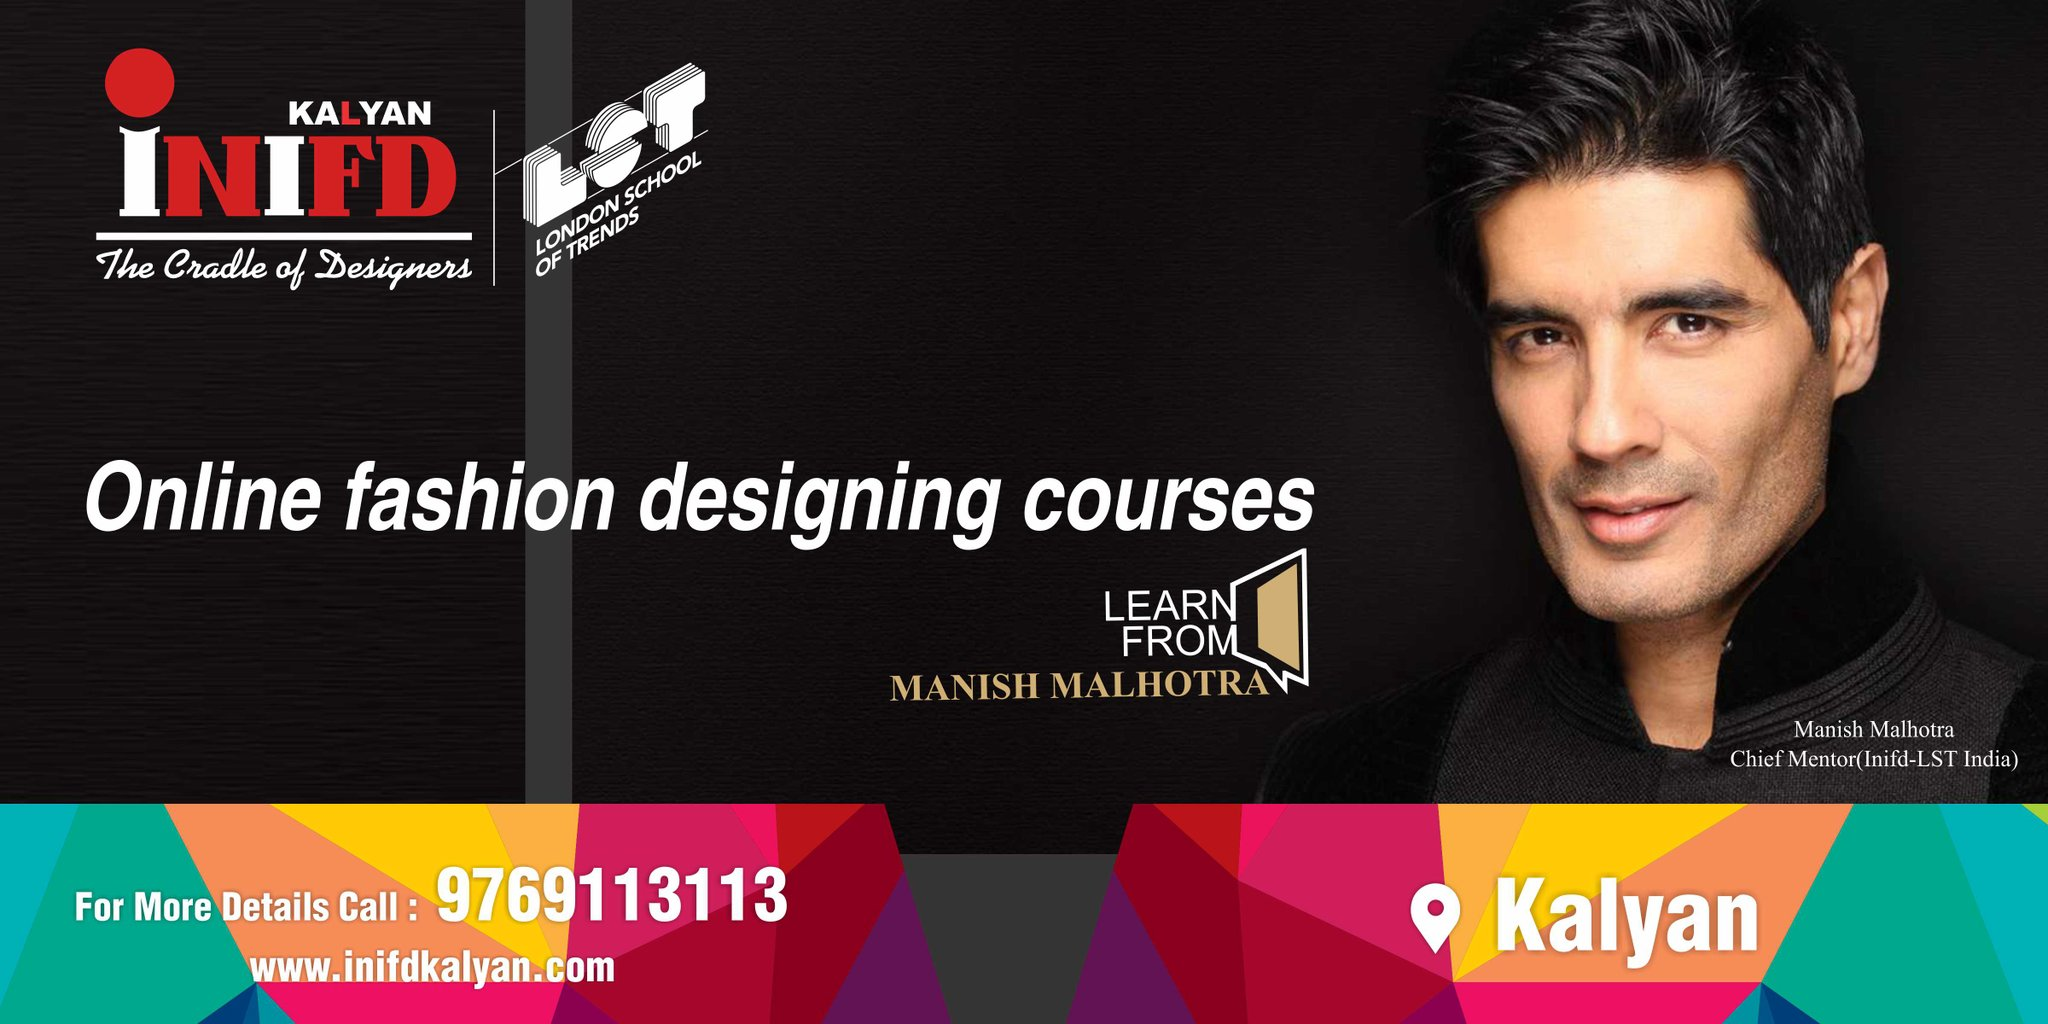 Inifd Kalyan On Twitter Learn Fashion Designing In Your Free Time And At The Comfort Of Your Home Inifd With London School Of Trends Have Started Online Fashion Designing Courses By None